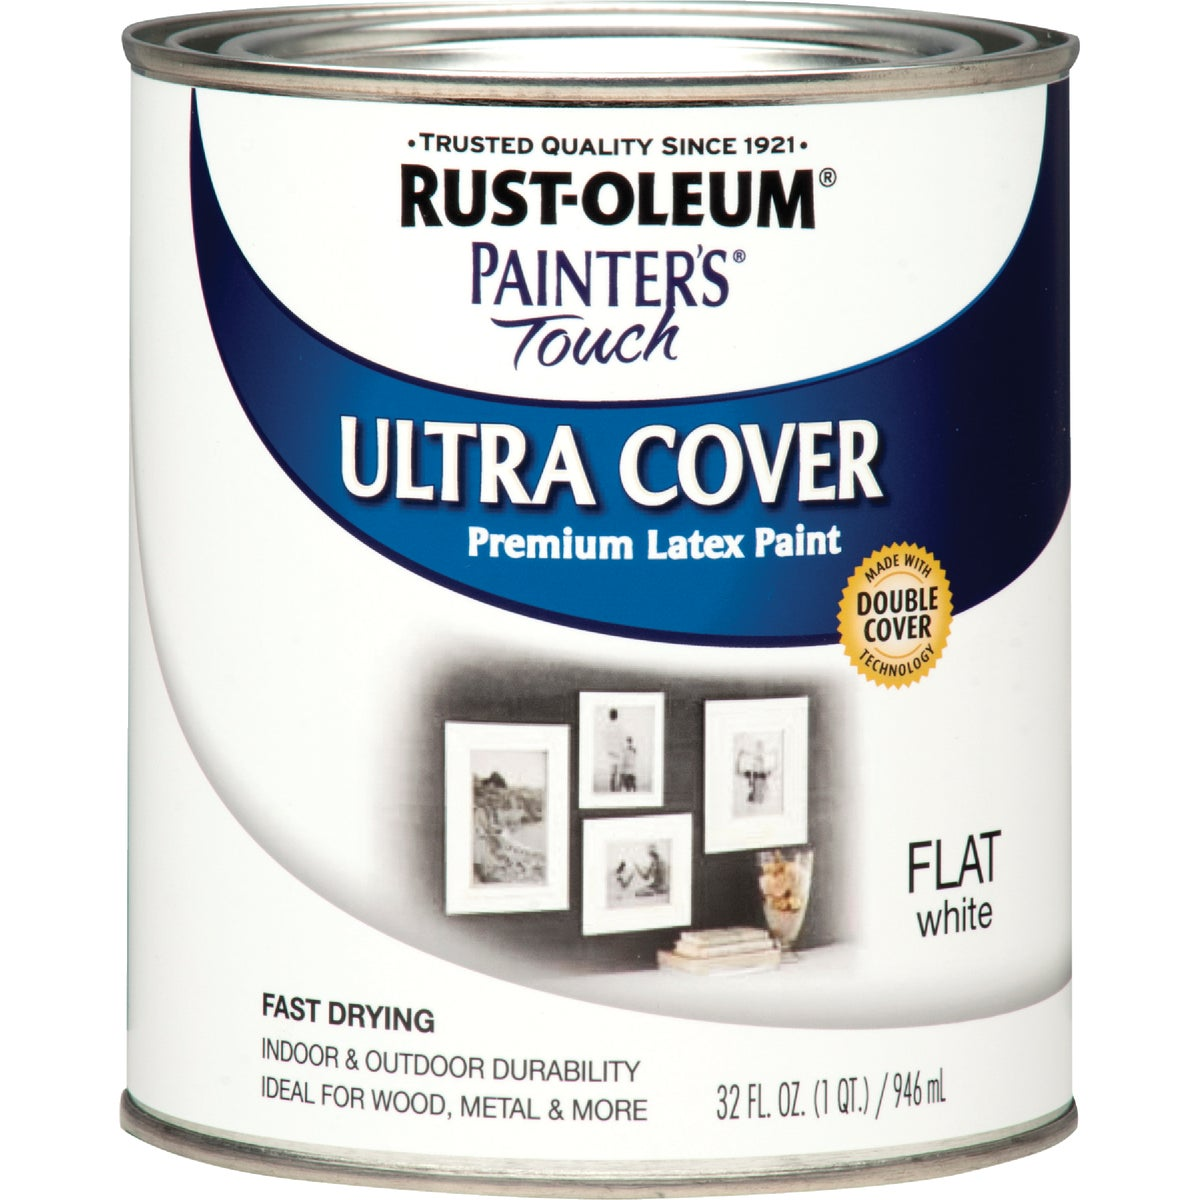 FLAT WHITE LATEX PAINT - 1990-502 by Rustoleum